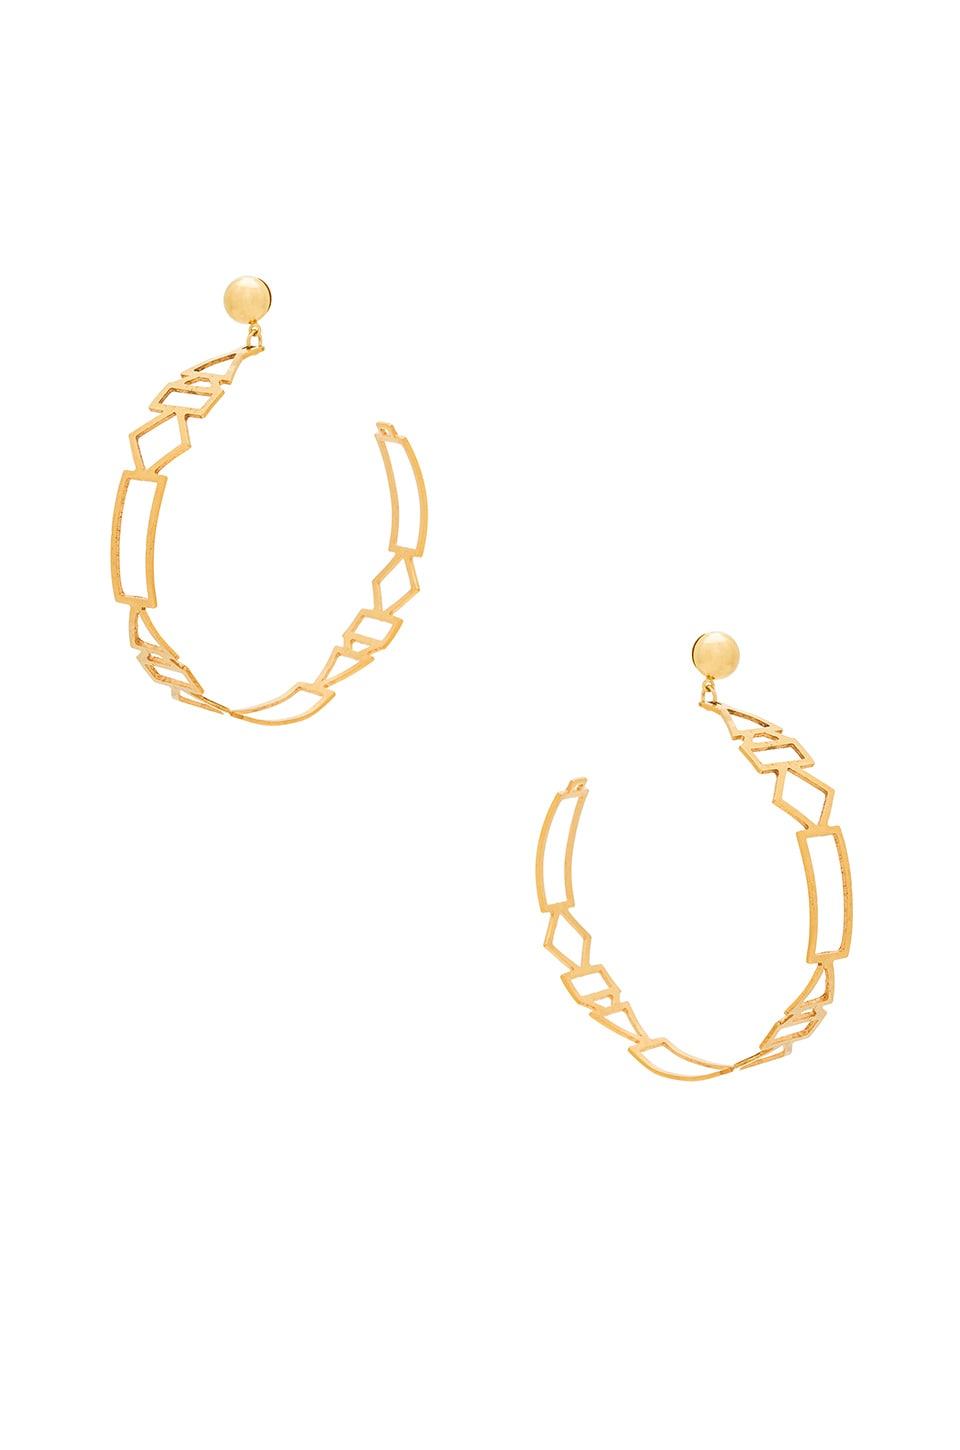 LARUICCI Geometric Hoops in Gold